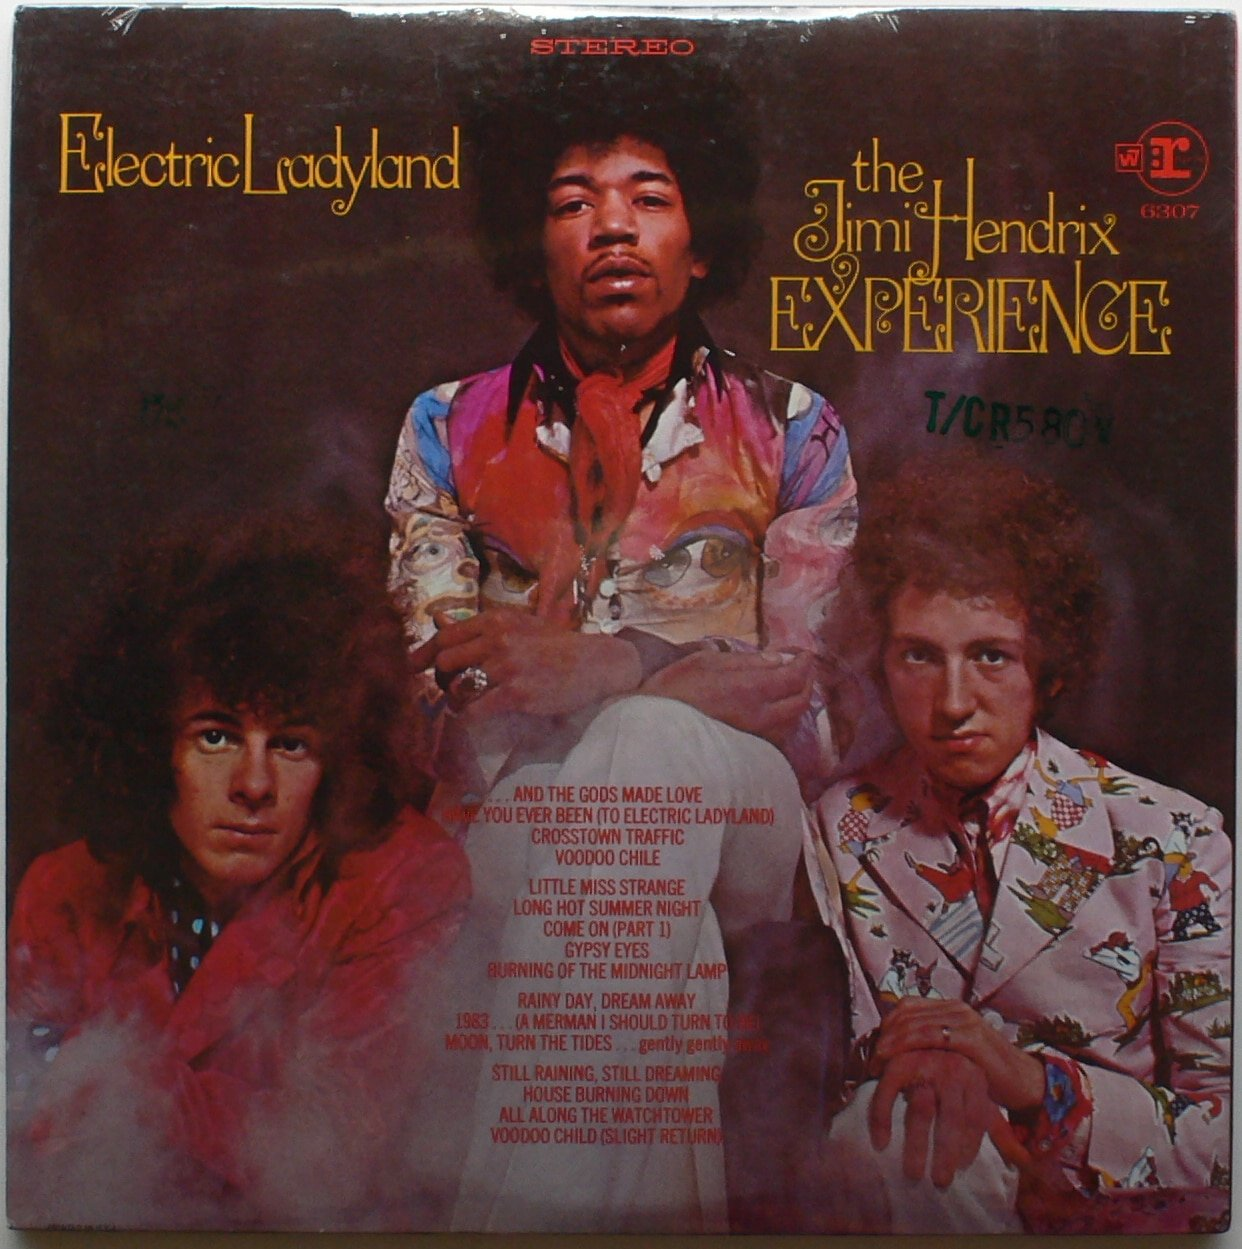 Voodoo Child Texteffect |Electric Ladyland Album Cover